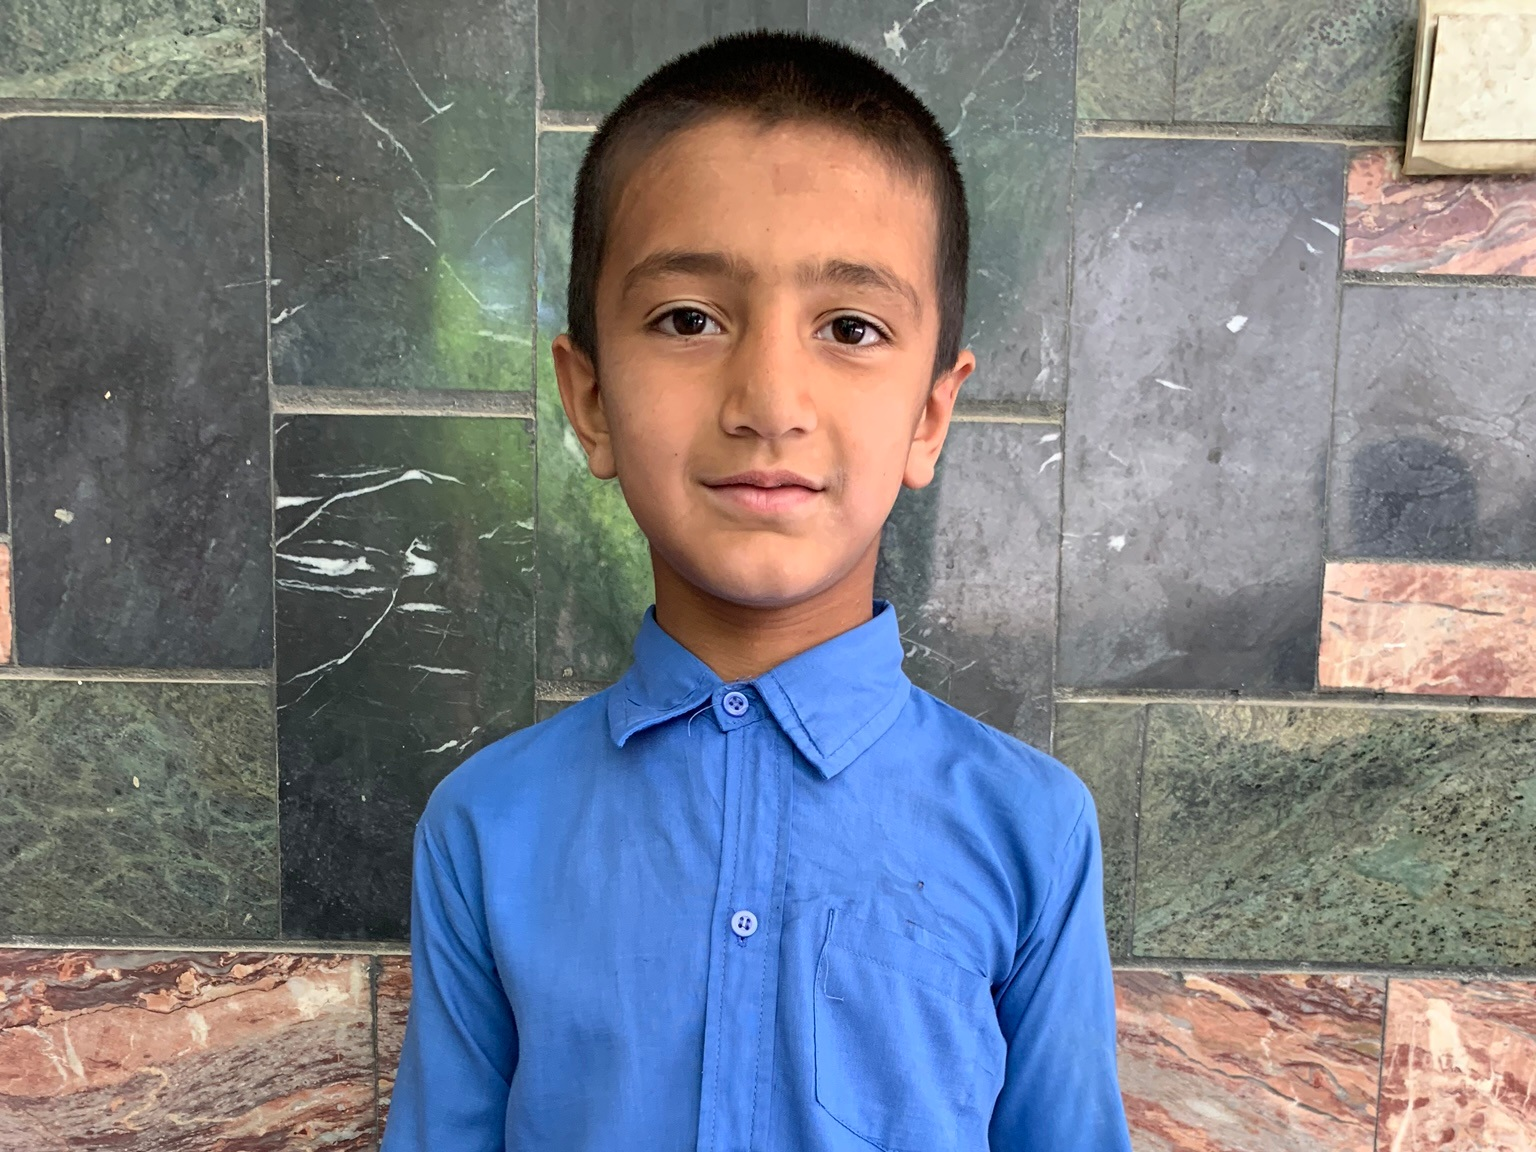 Geidalila, Age 10 - Geidalila has 4 siblings. His mother is unemployed. His father is an office cleaner.BE GEIDALILA'S PARTNER>